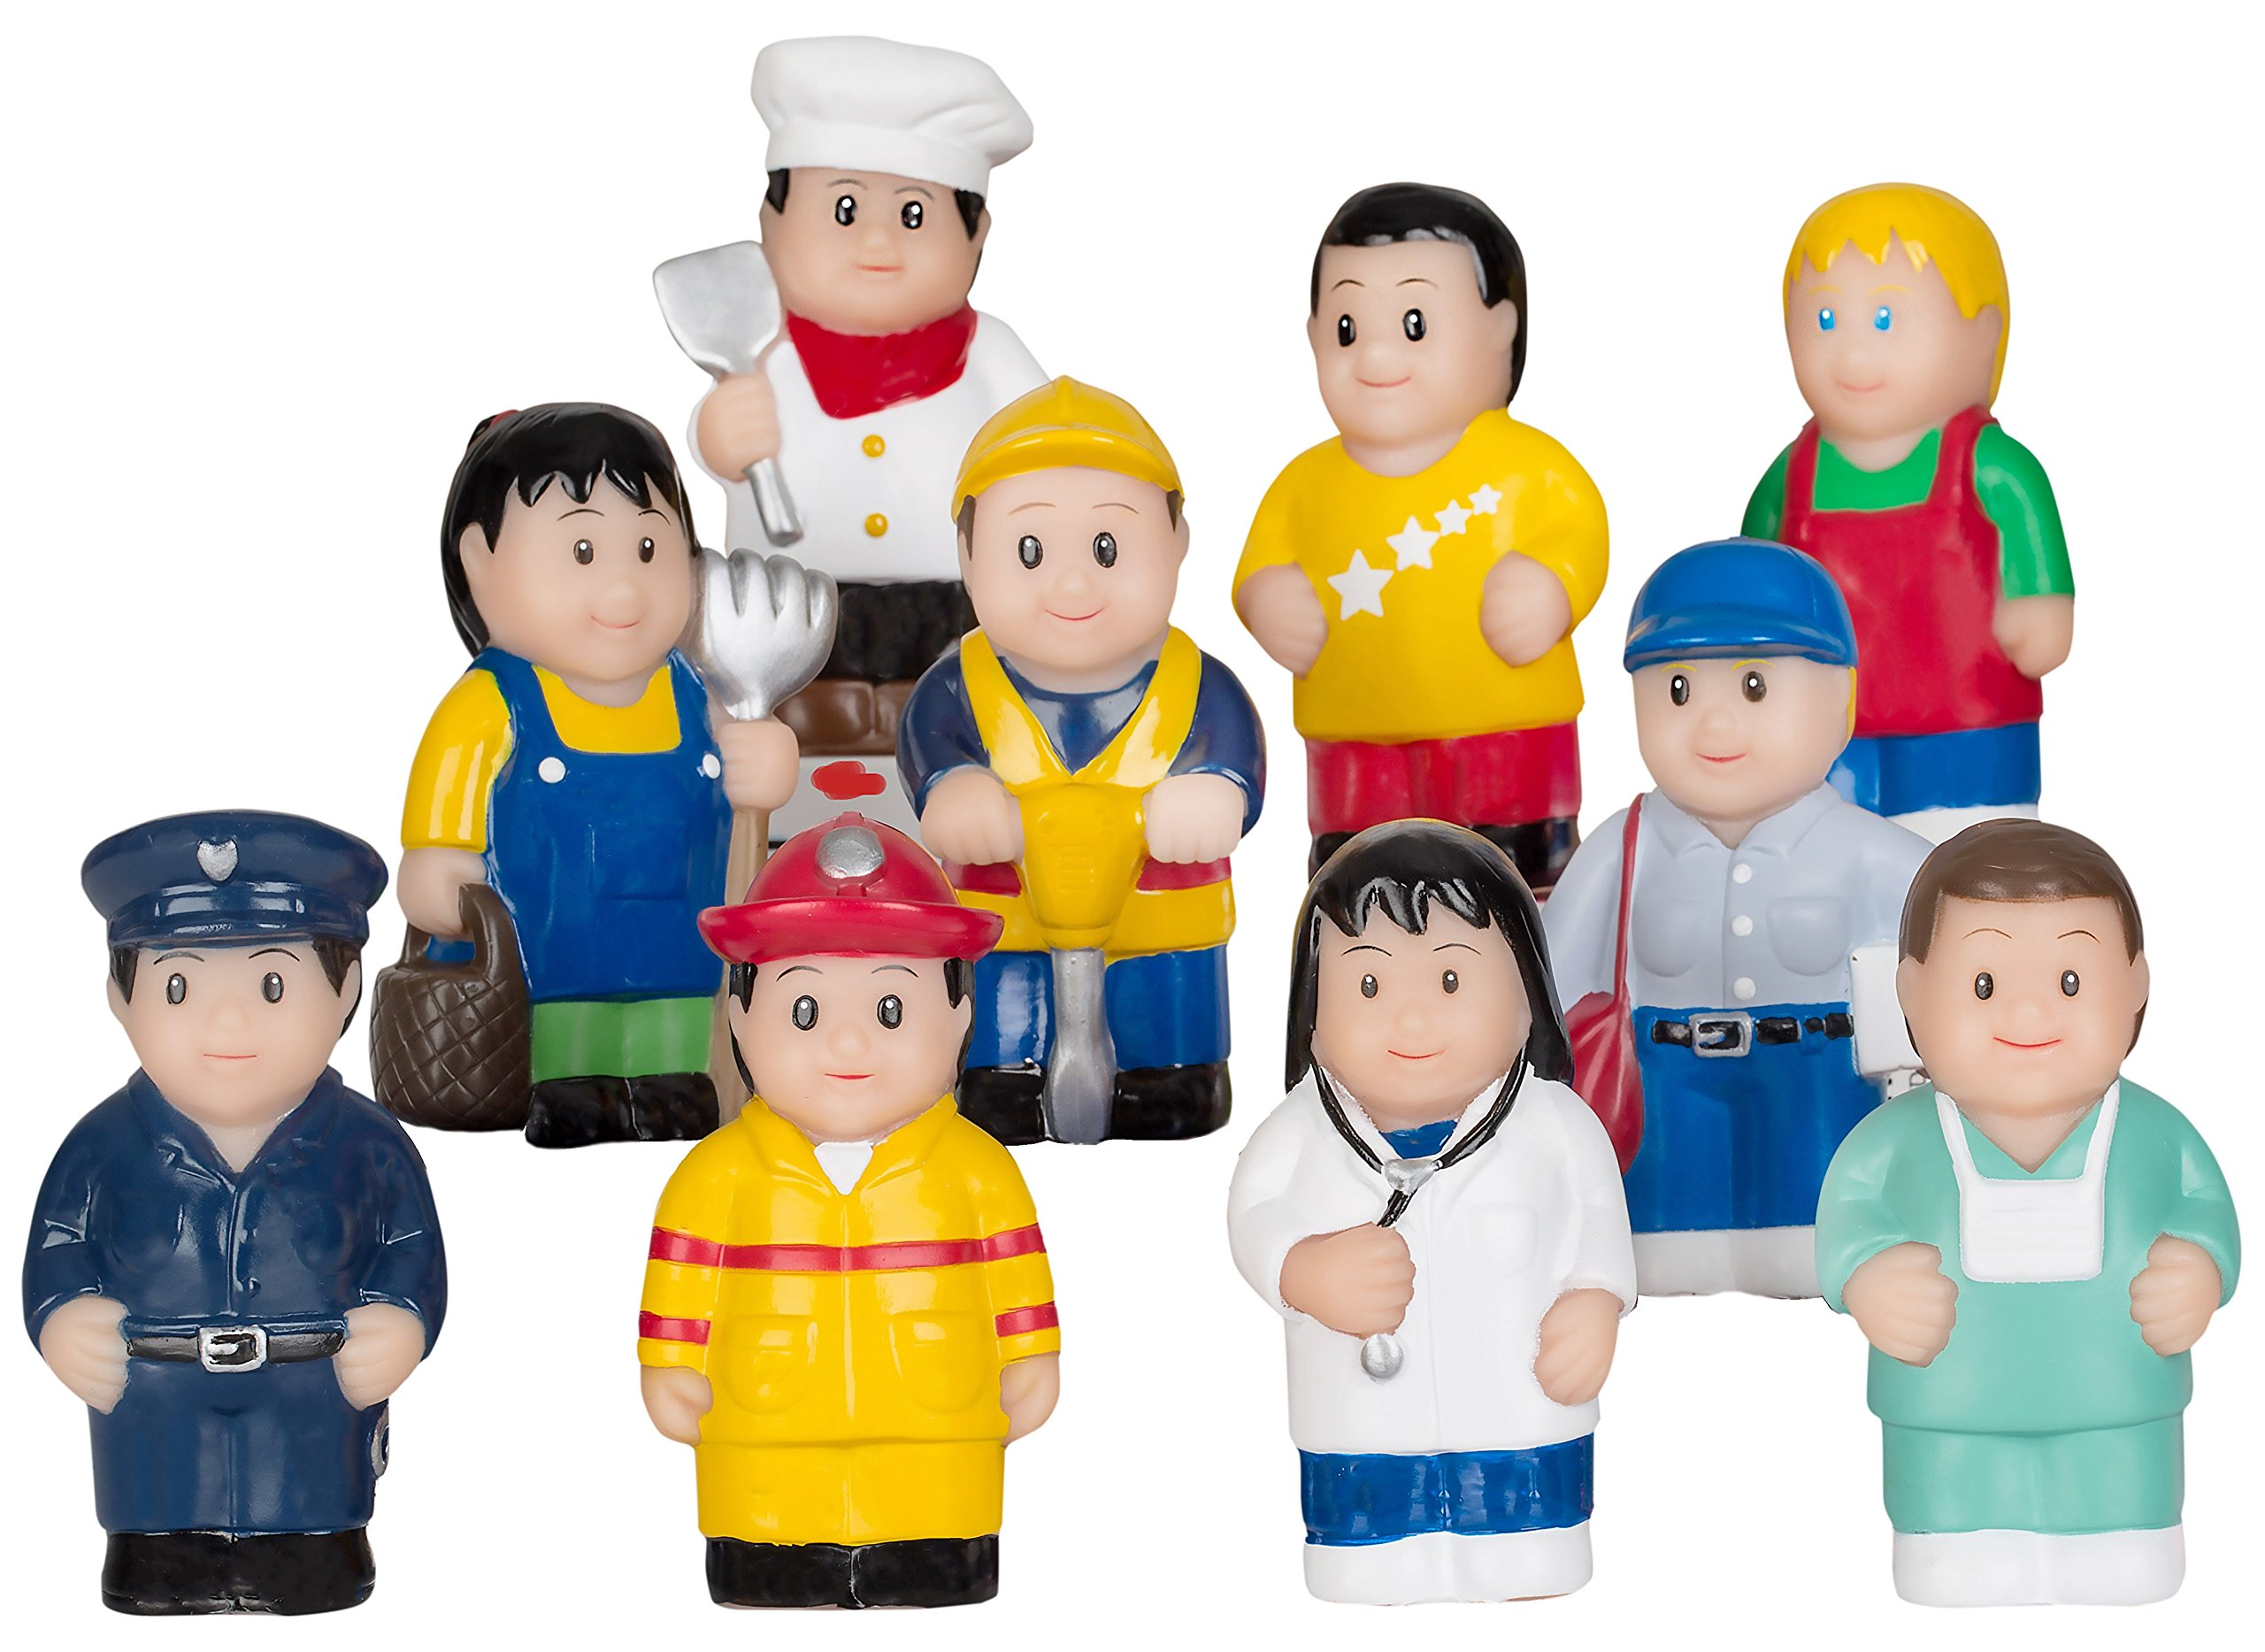 Menchies Little Kids Figures Playset Little Kids Community Play Figures Little Figures for... by Menchies